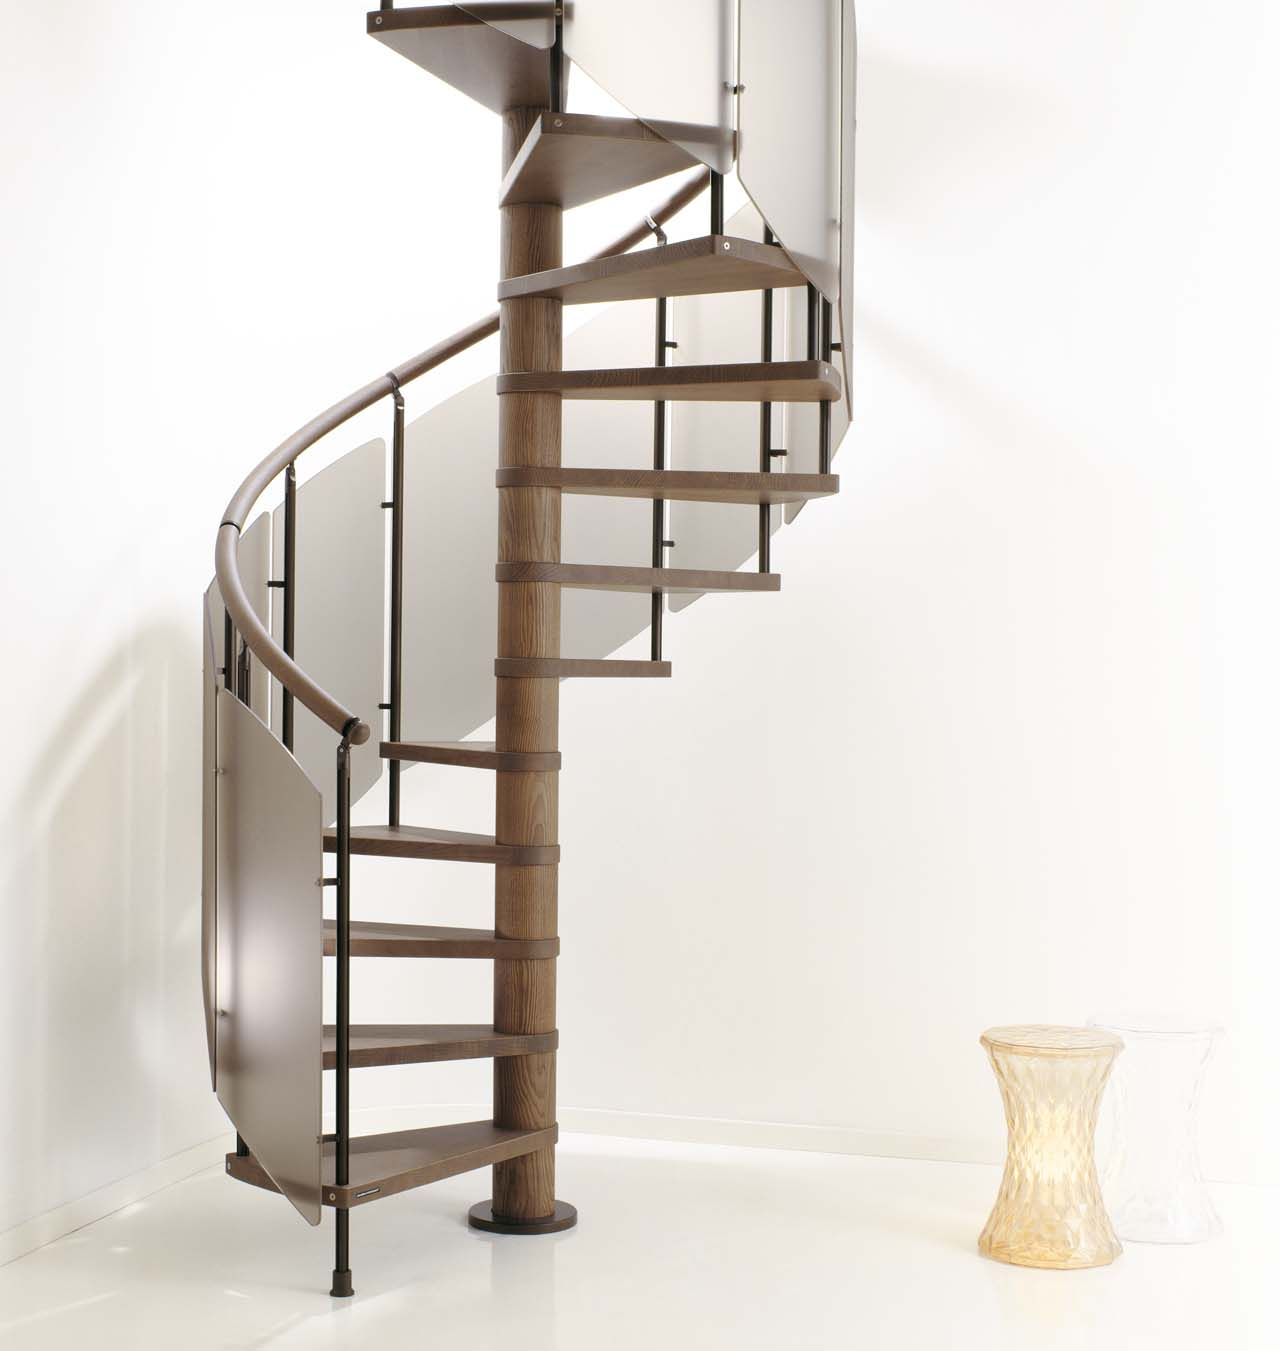 Spiral stairs design for Spiral stair design